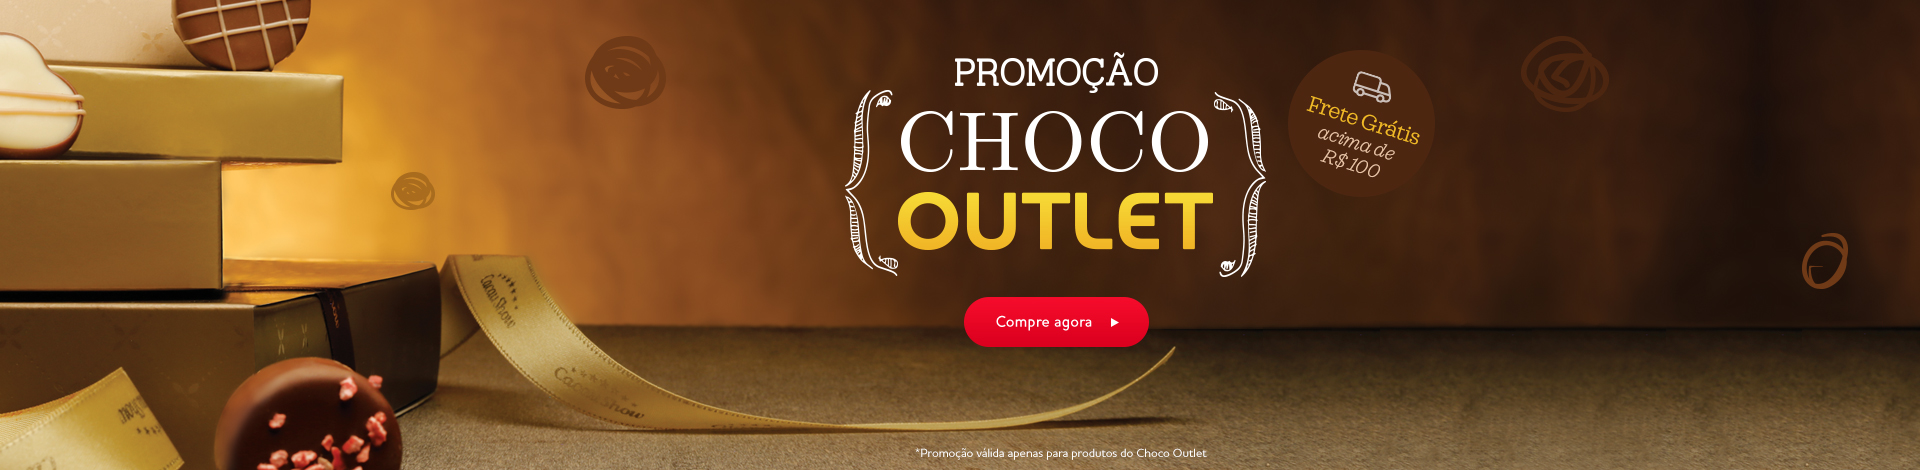 Choco-outlet